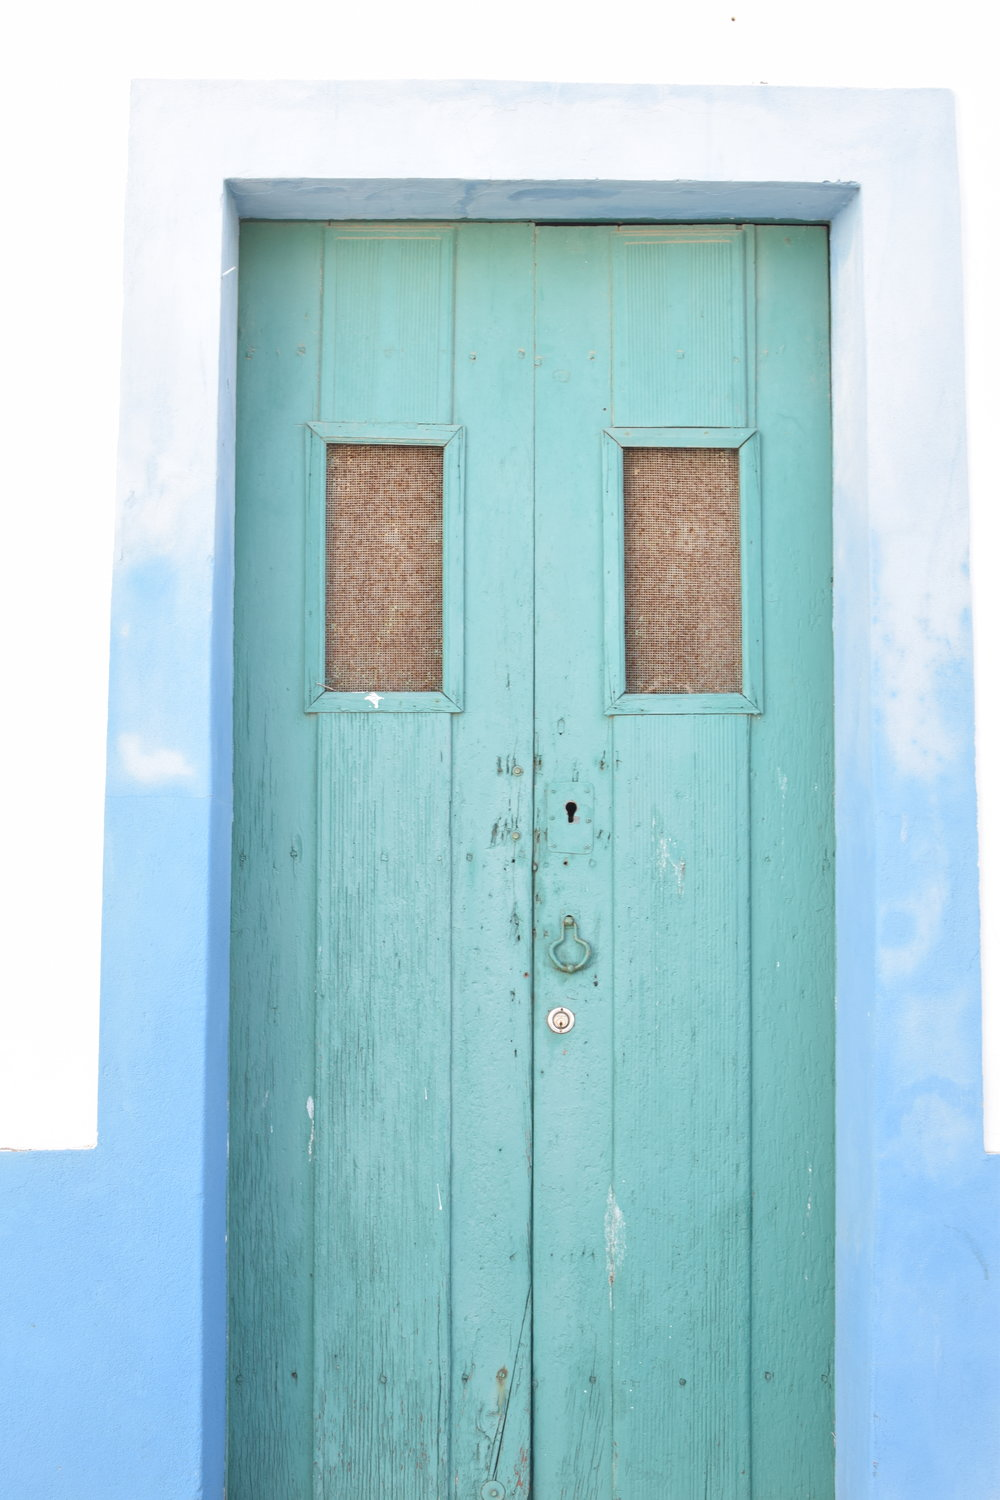 Tie dye walls, turquoise door  | Finding colour inspiration in Lagos, Portugal | Soi 55 Travels8.JPG